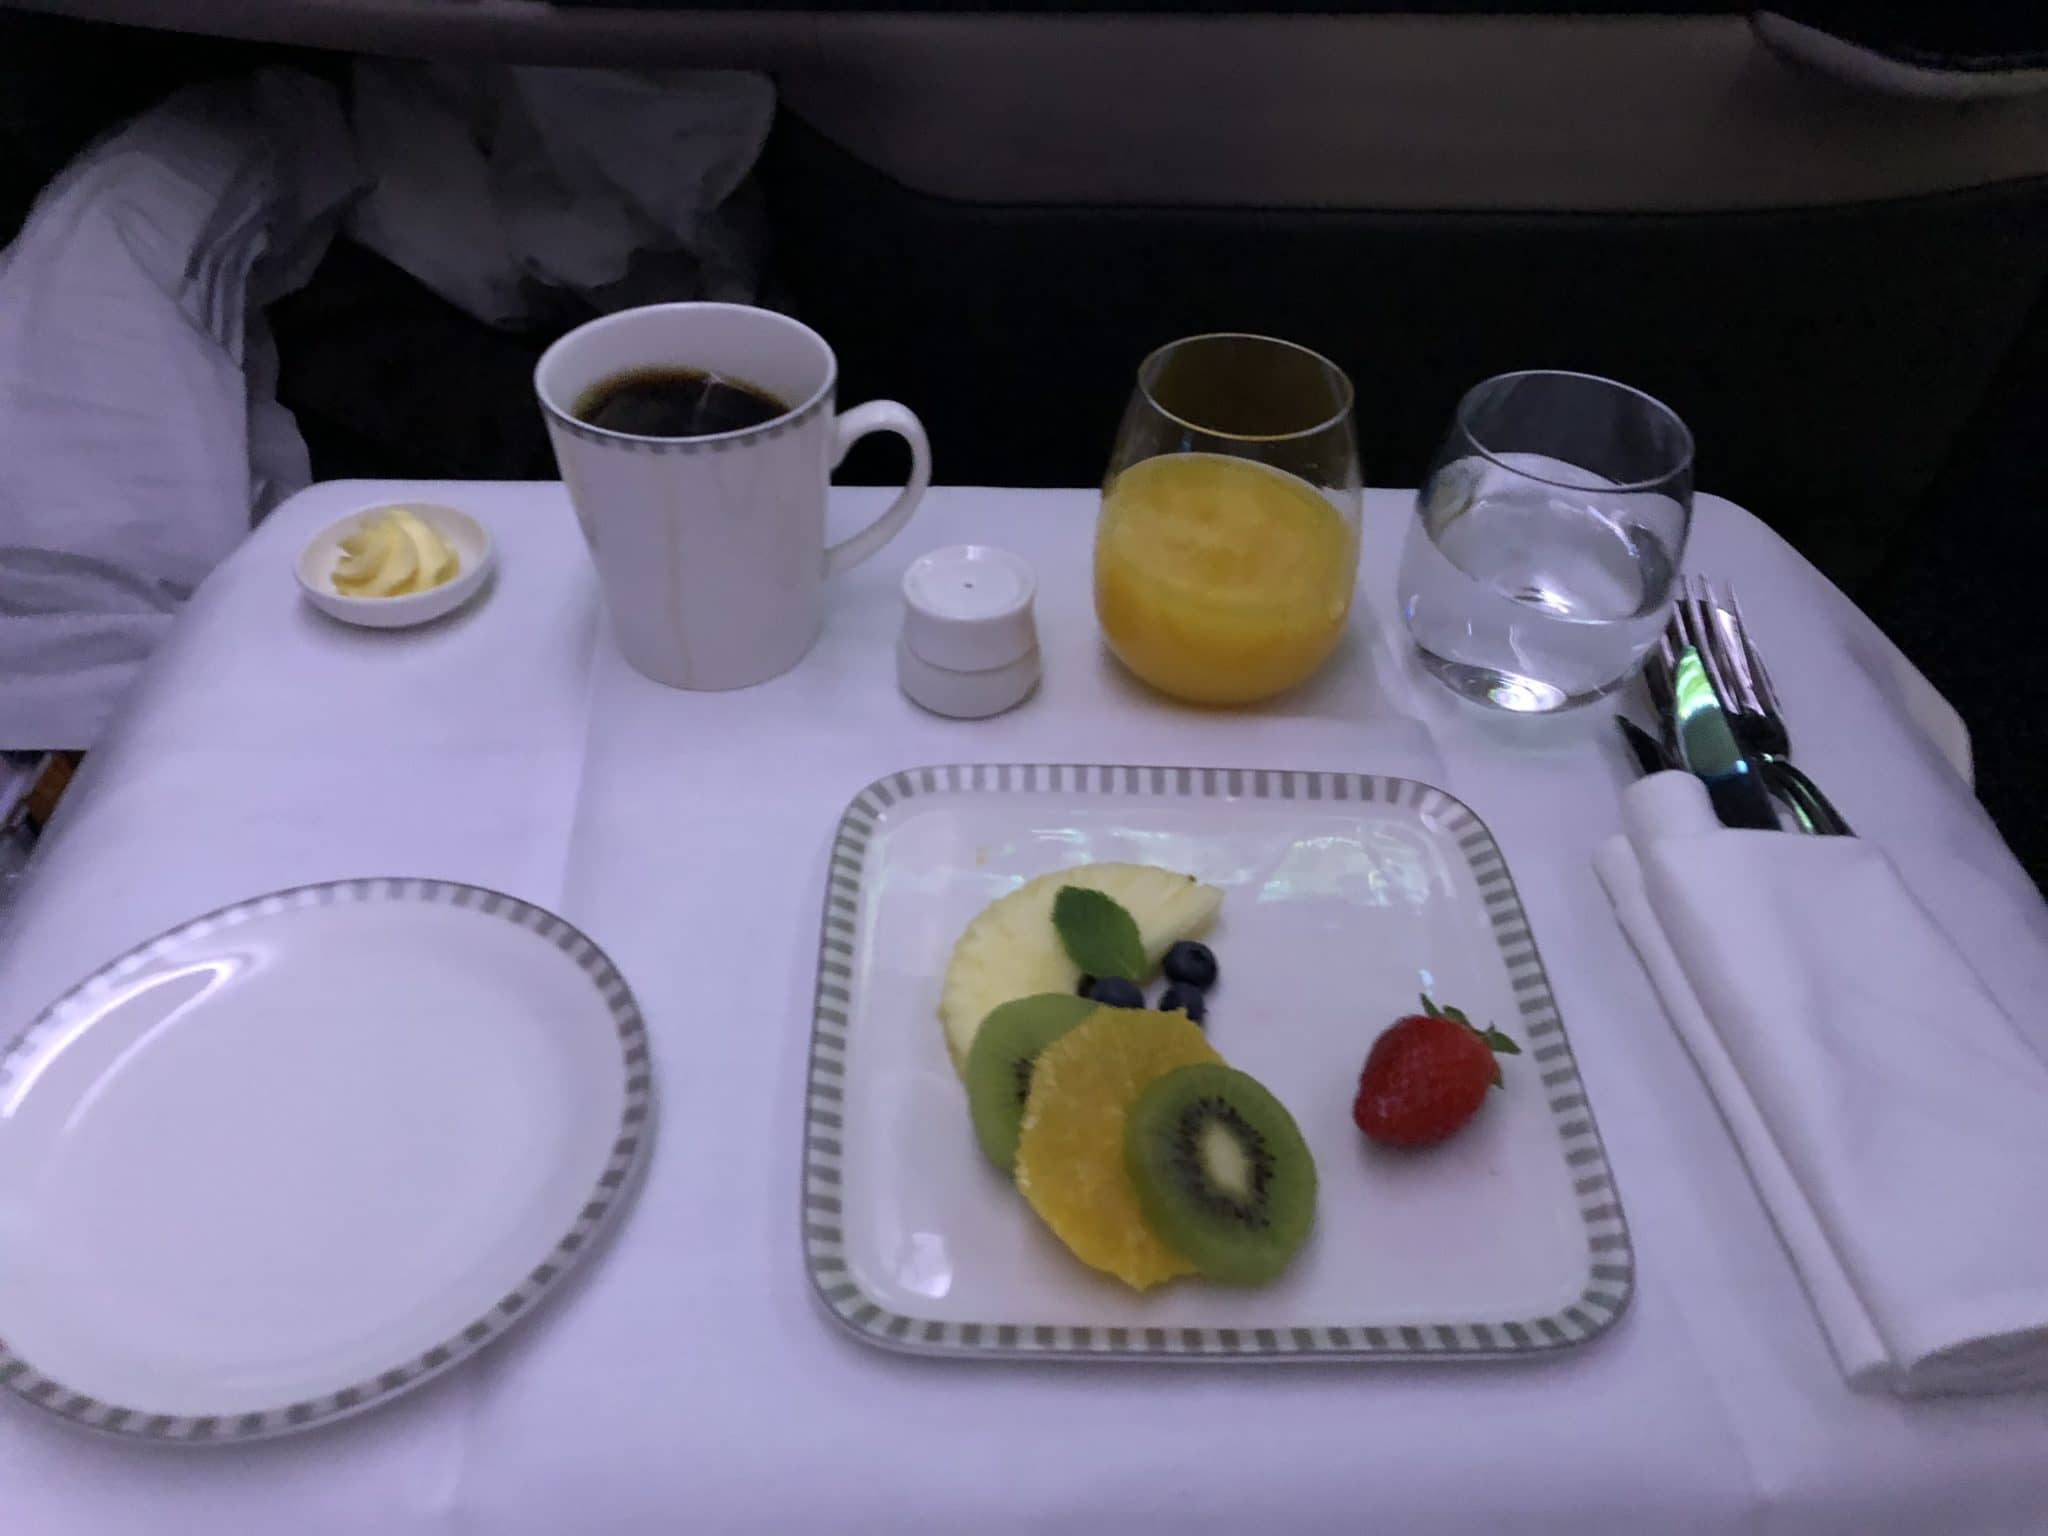 Singapore Airlines neue Business Class A380 Vorspeise Fruehstueck